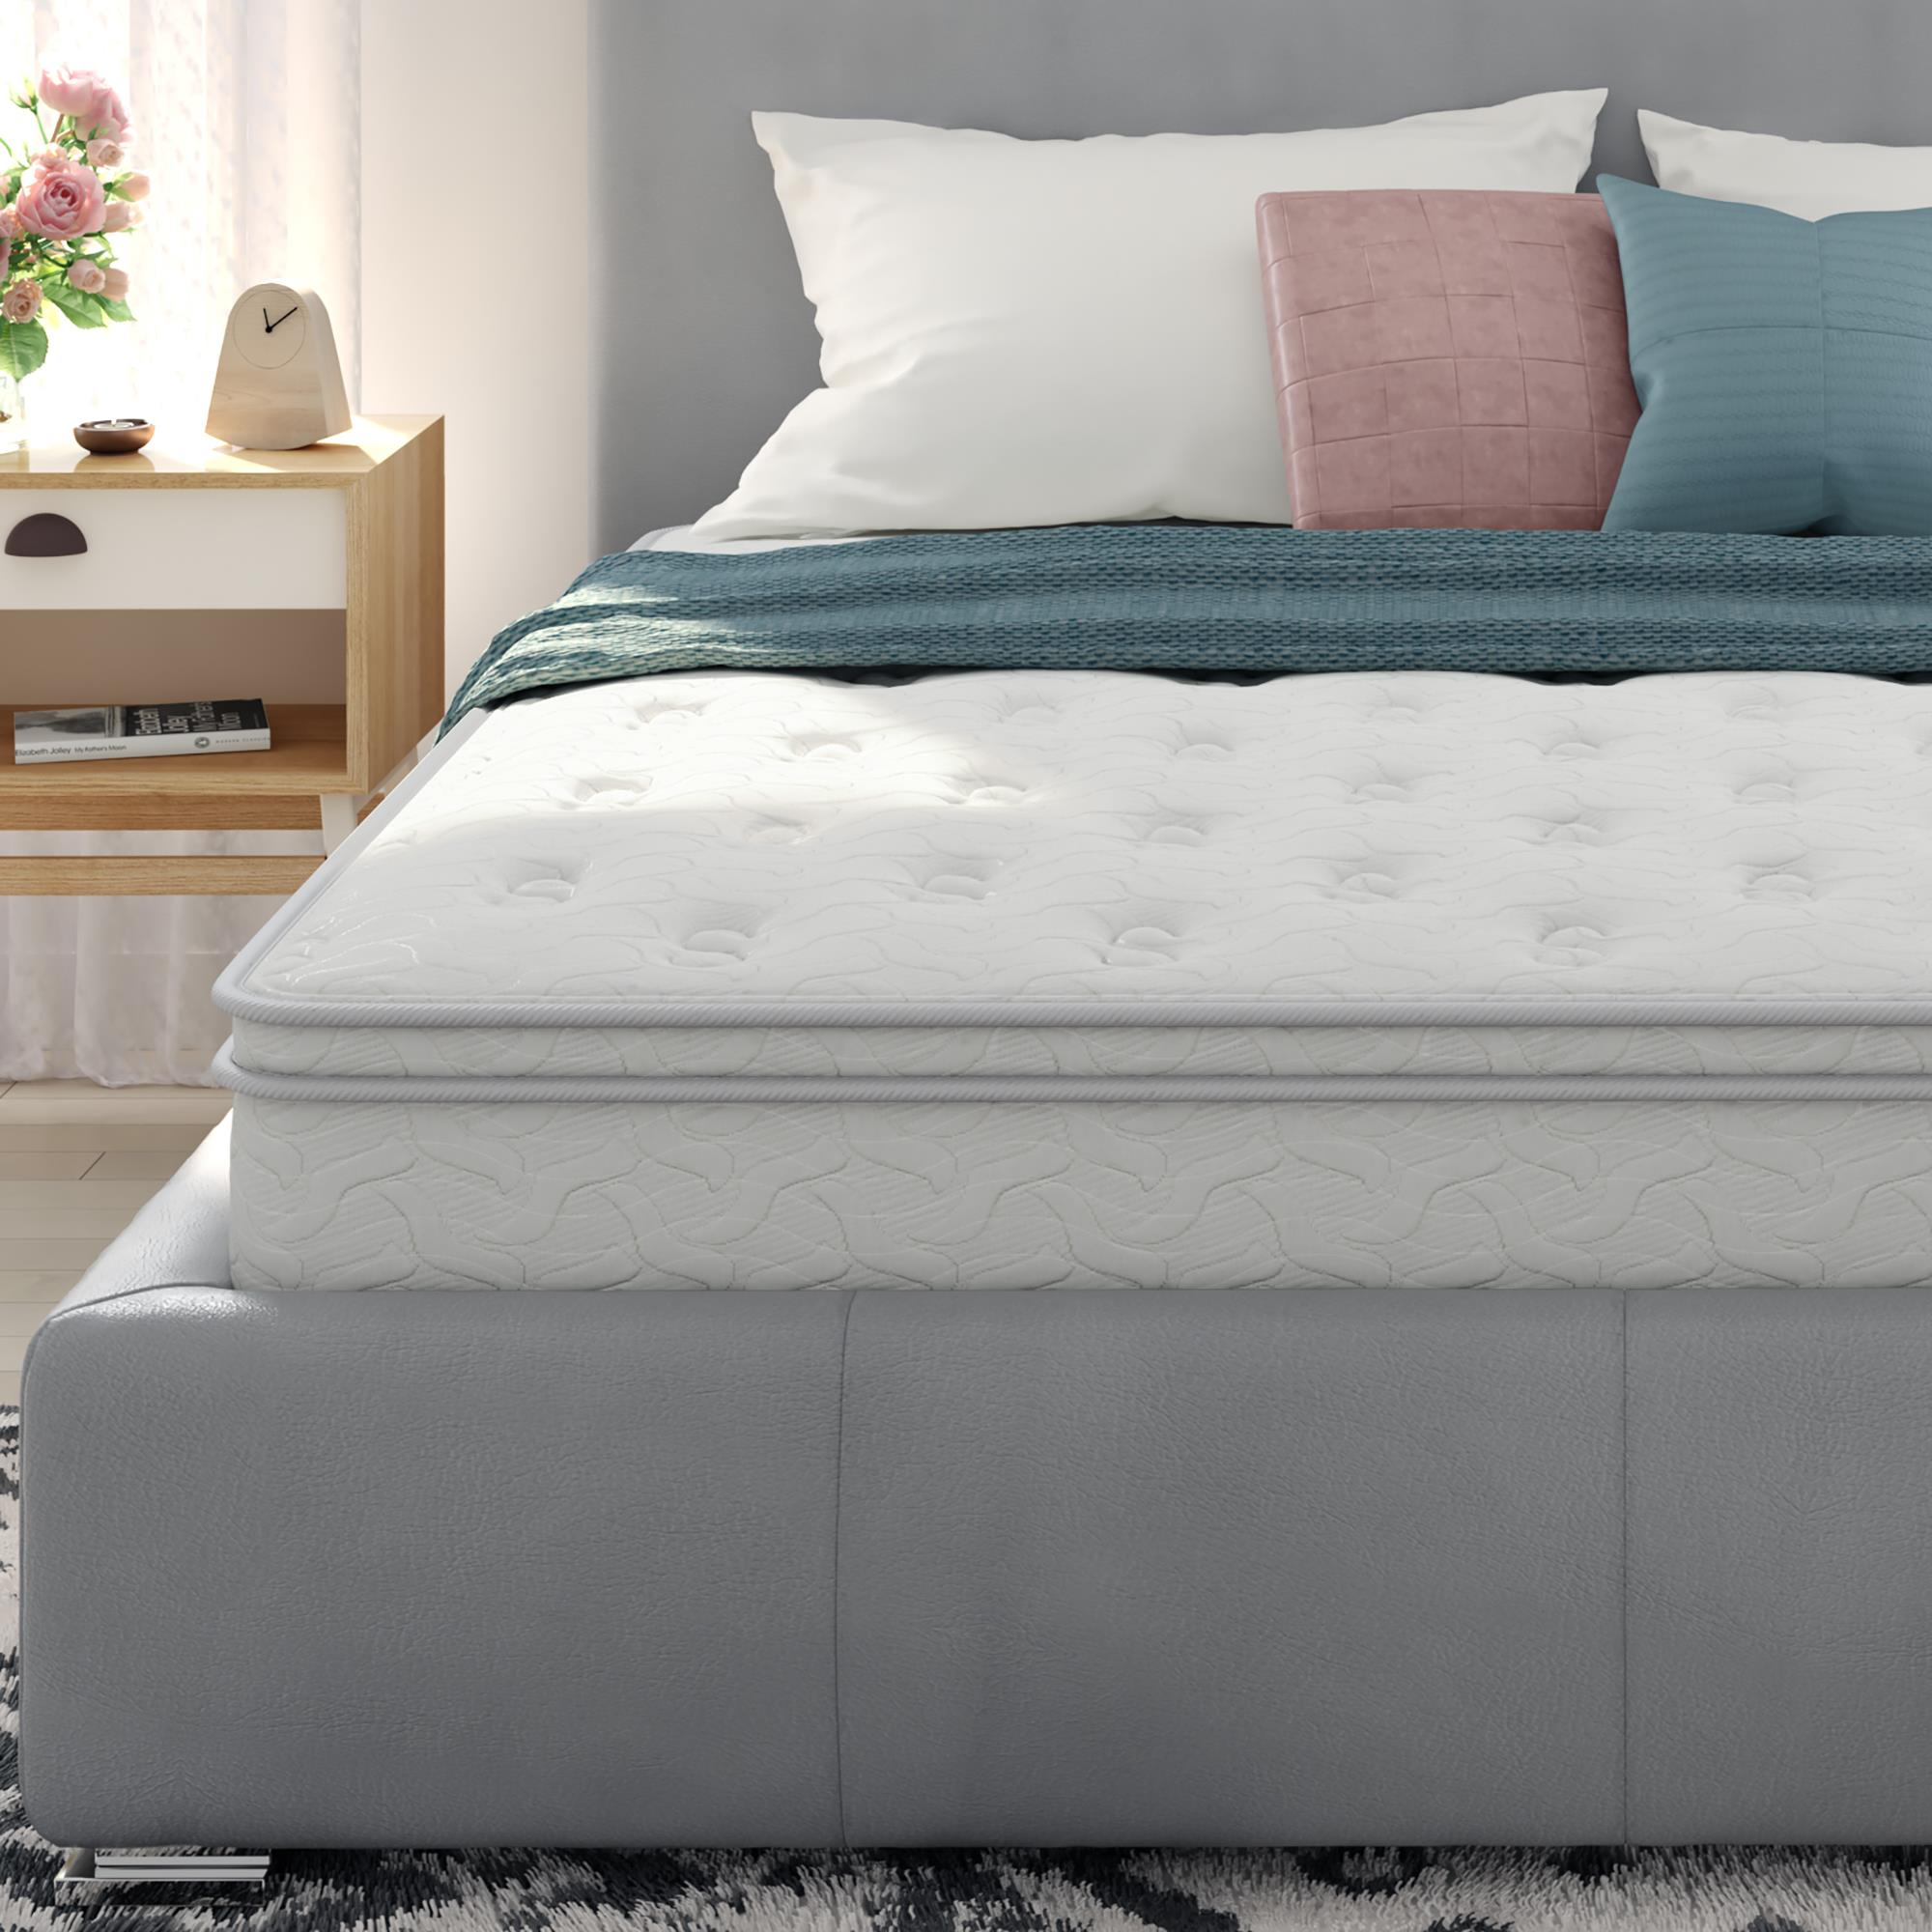 "Signature Sleep Gold Revive 5-Zone Independently Encased Coil 10"" Mattress"